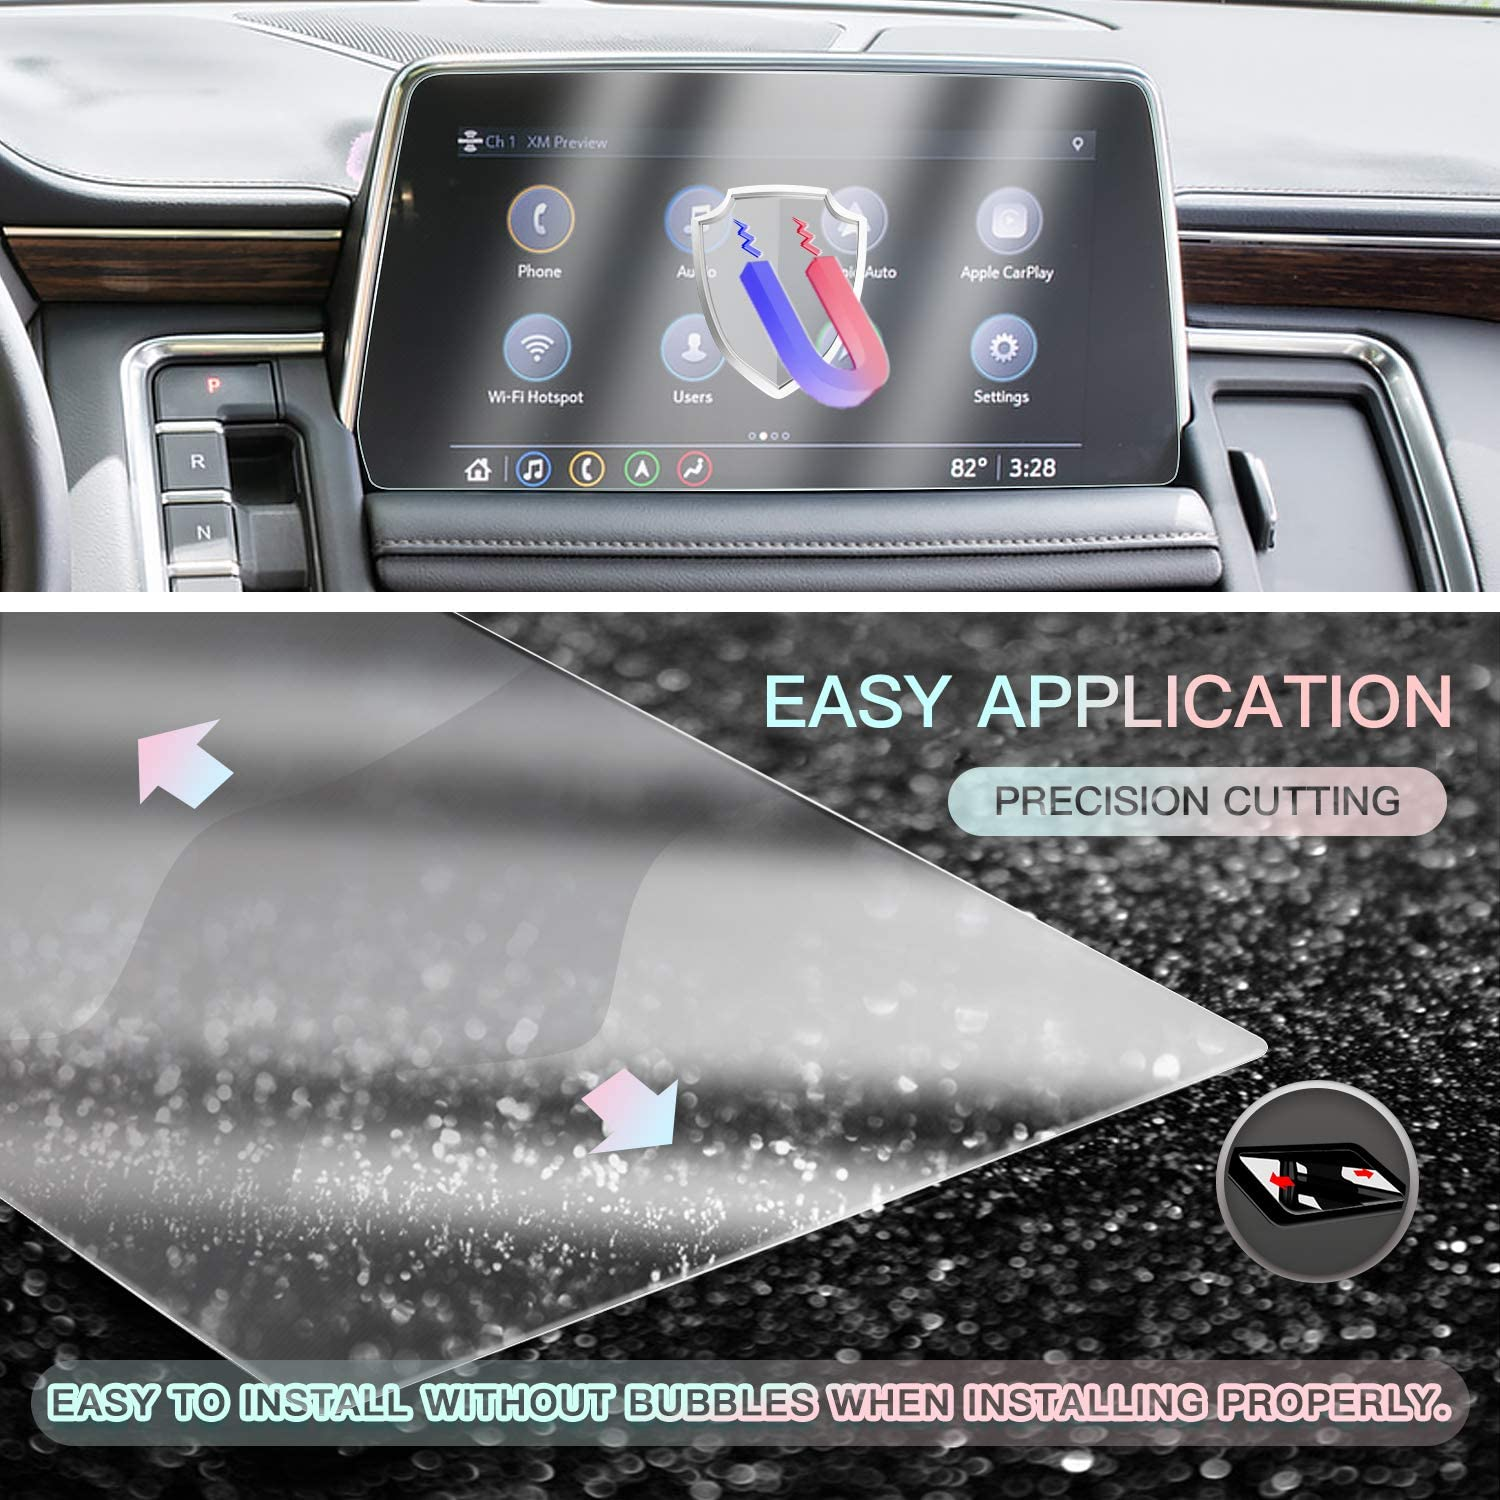 Plastic Screen Protector for 2021 Tahoe 10.2 Inch Touch Screen 2PCS PET Plastic Crystal Clear Protective Film Center Navigation Display Protective Film CDEFG